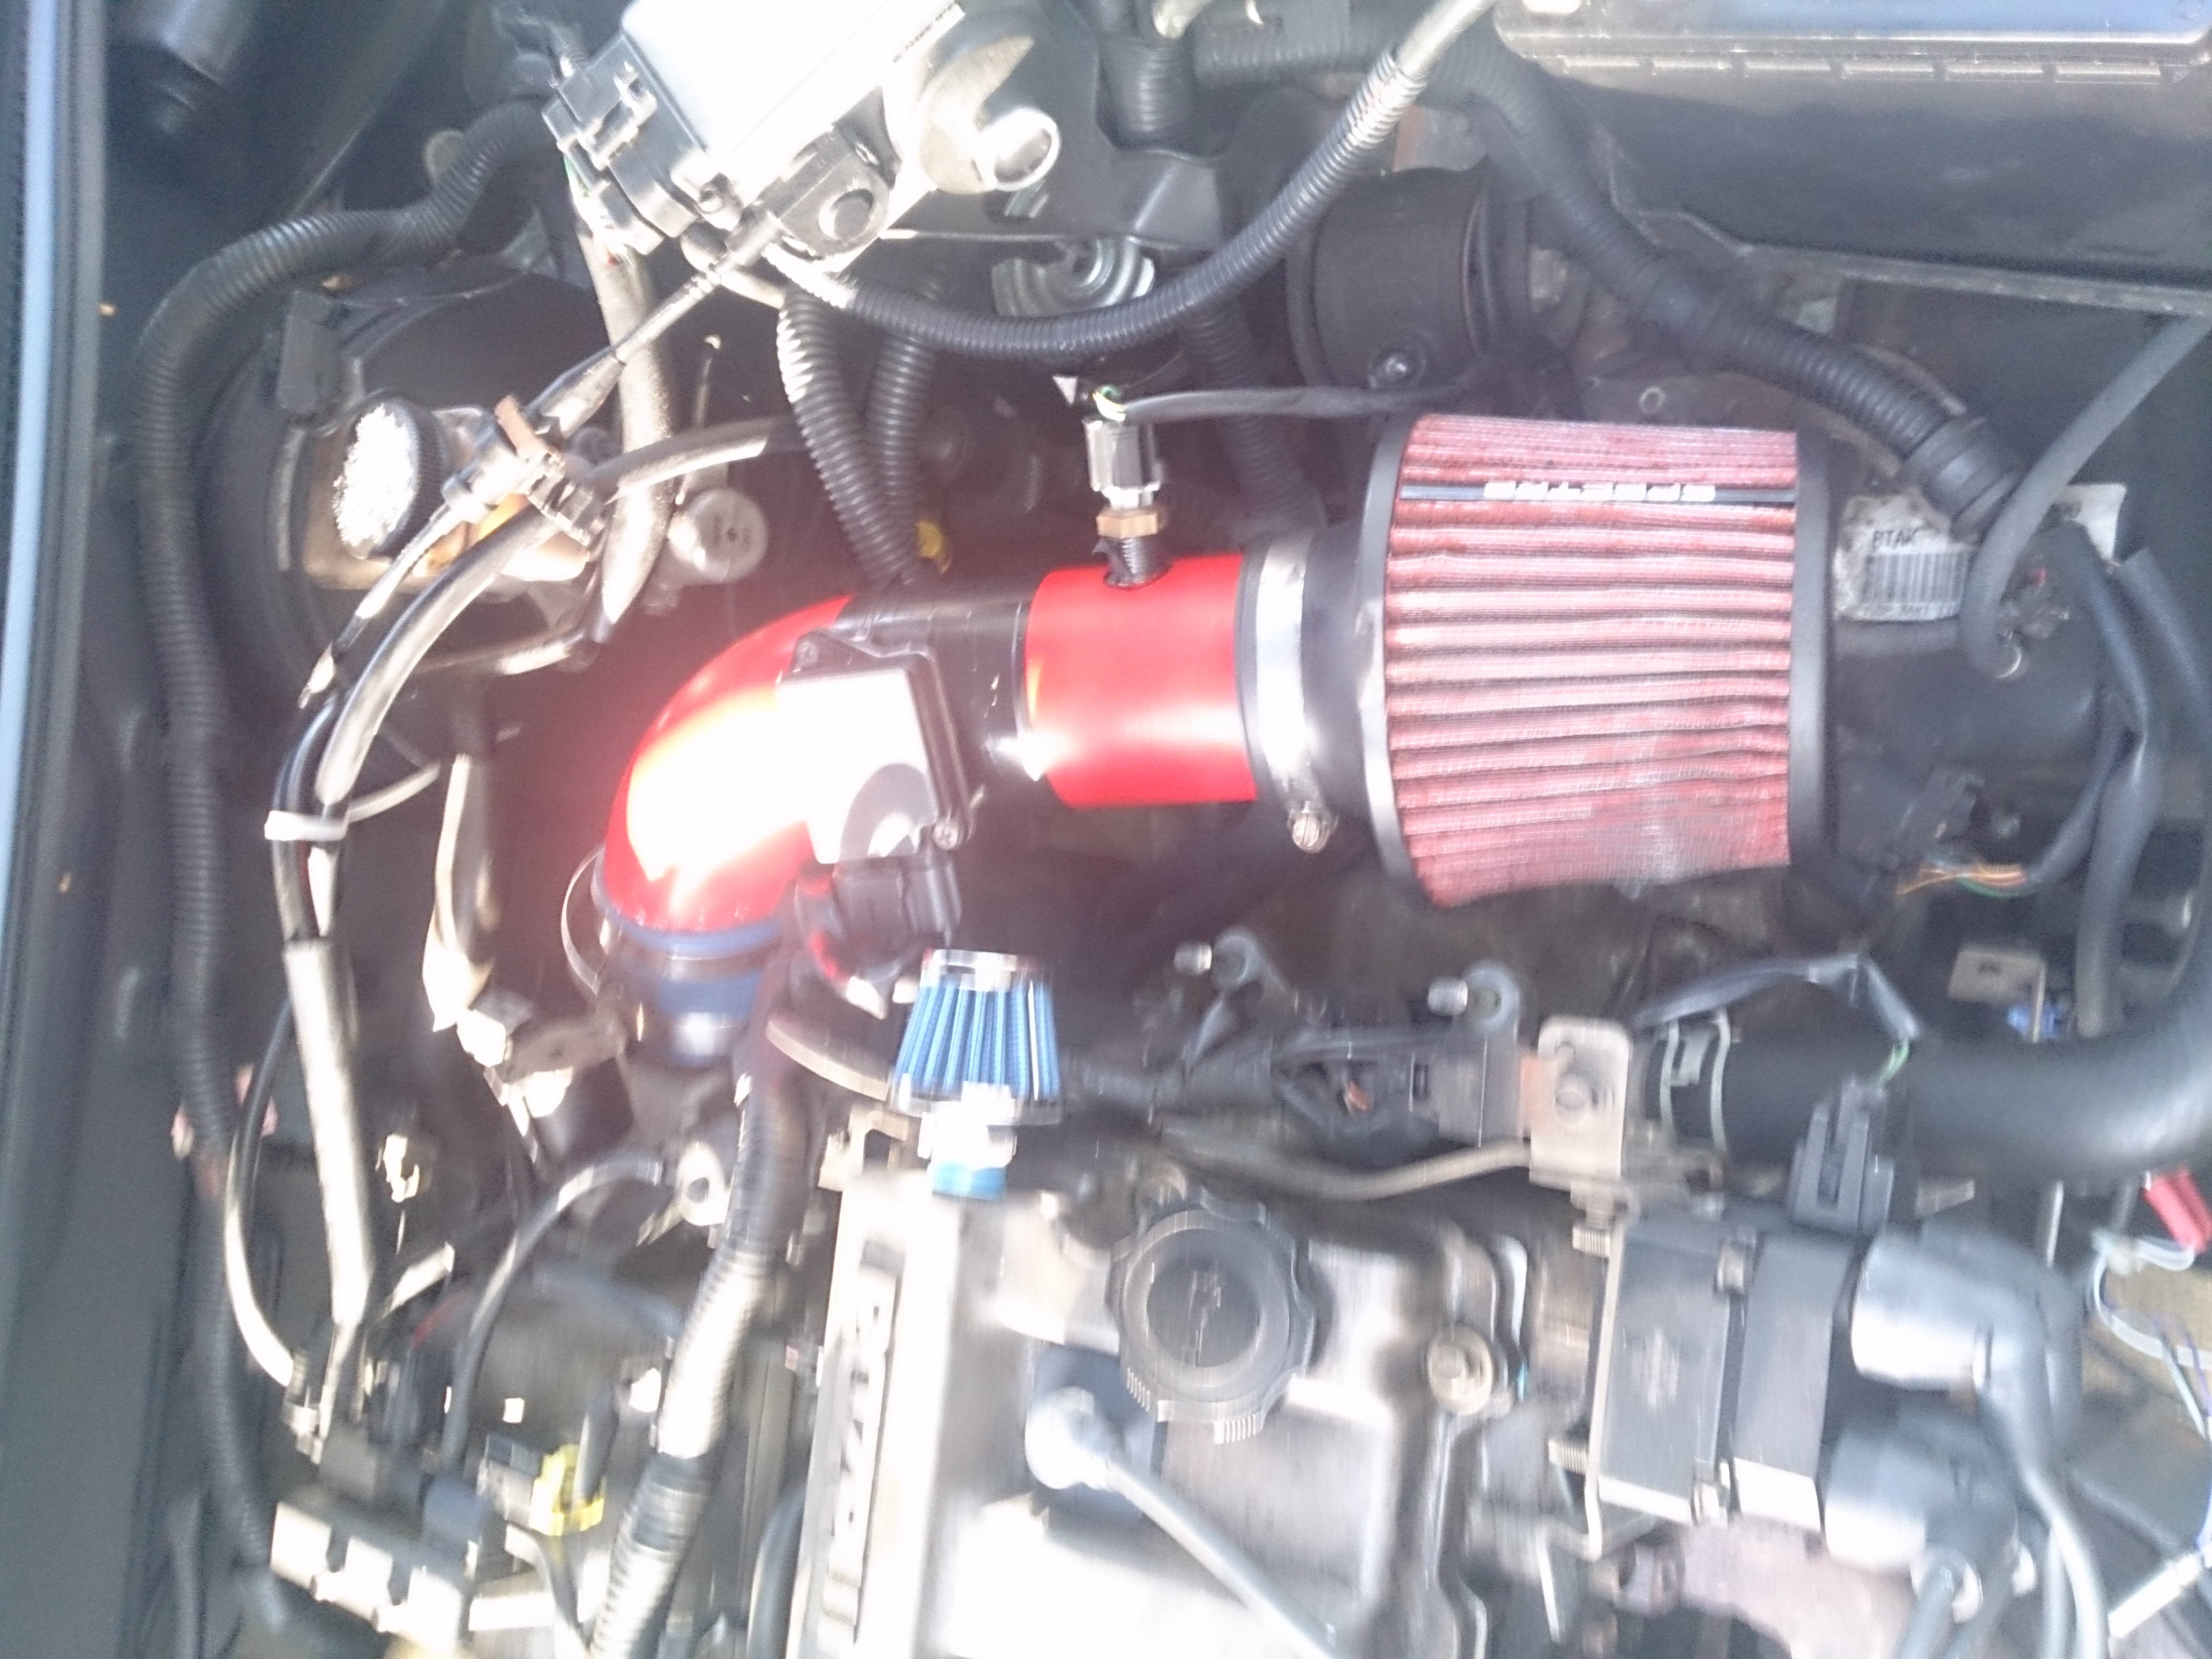 Added the intake in  - 19091841